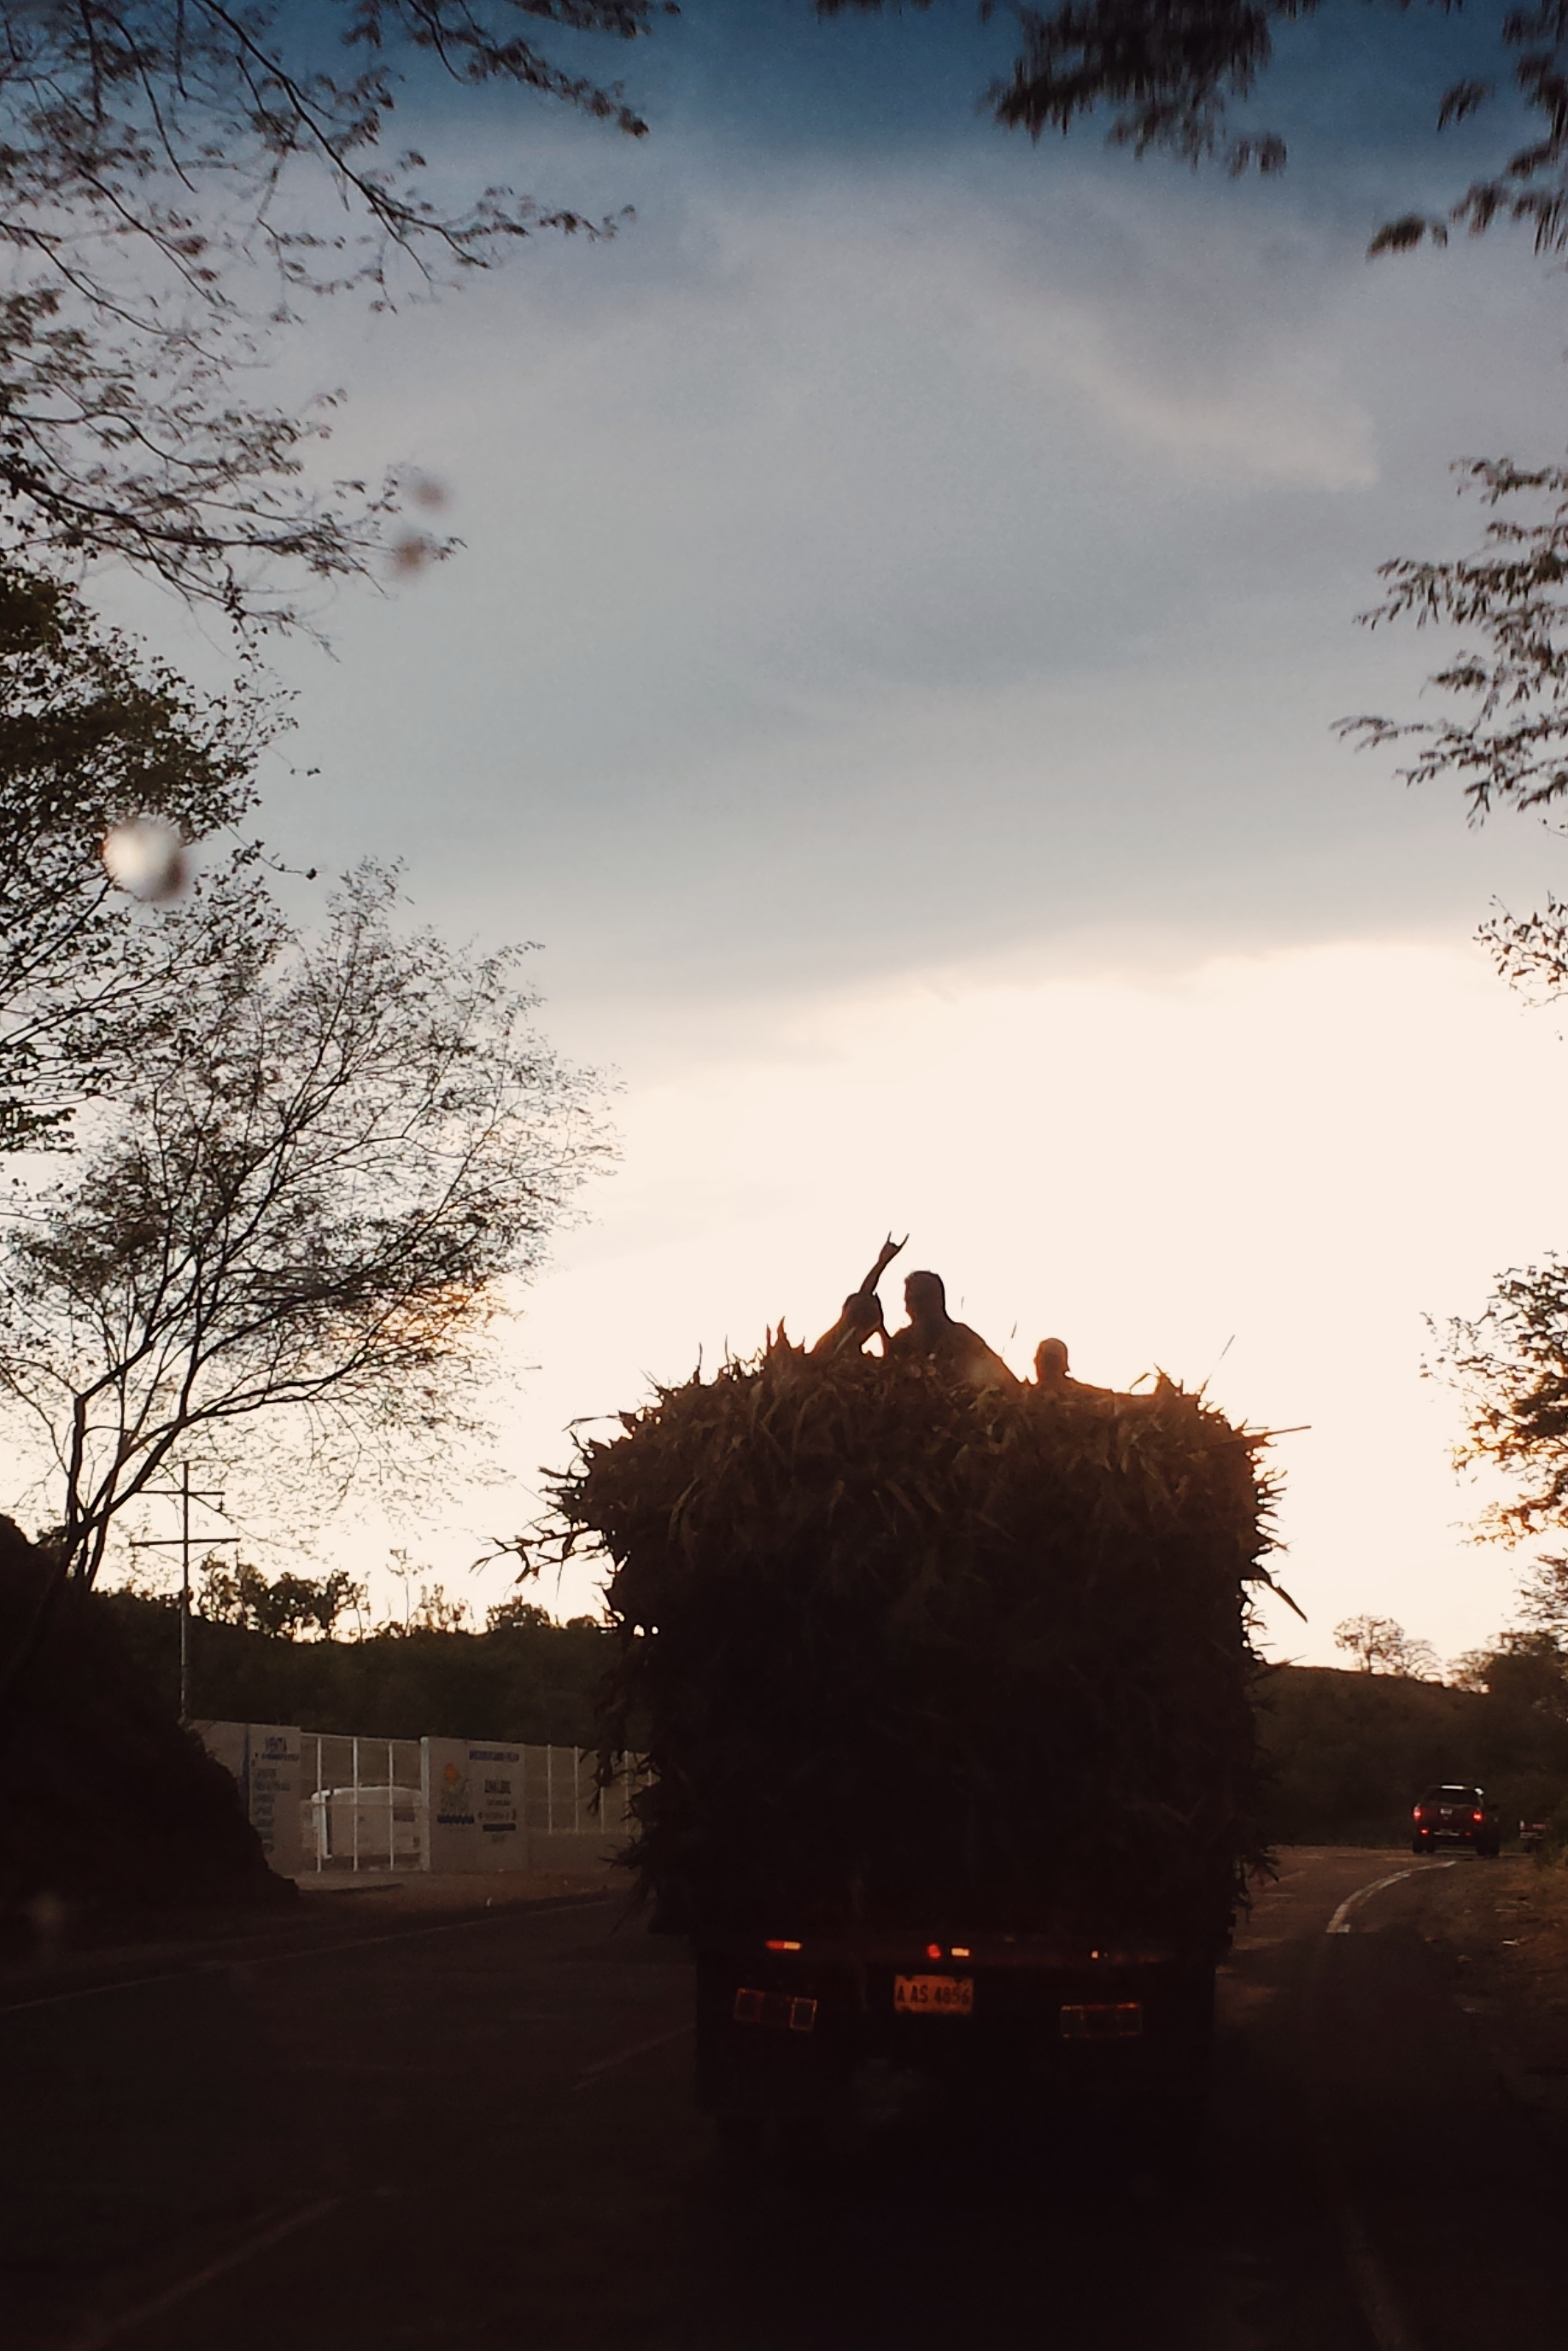 """The back of the truck driving in front of us. The silhouettes of three riders peek out from on top of bundles of wheat in the back of the truck. One man raises his arm and does the """"rock and roll"""" sign to our car."""